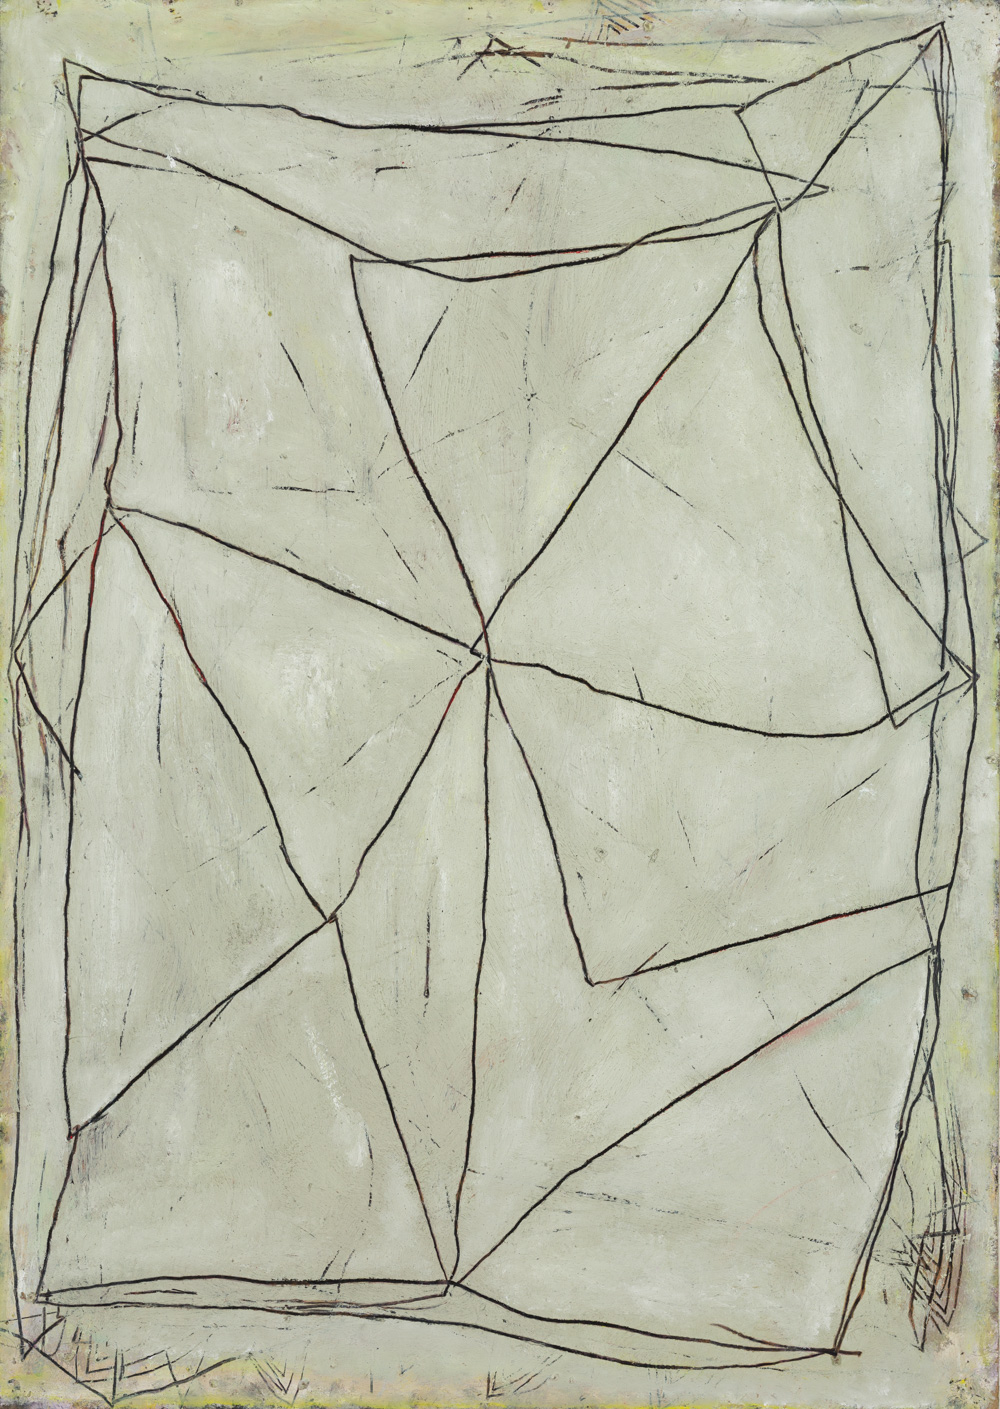 'Wire form I' 2019, Oil paint, graphite and wax pencil on card mounted on plywood